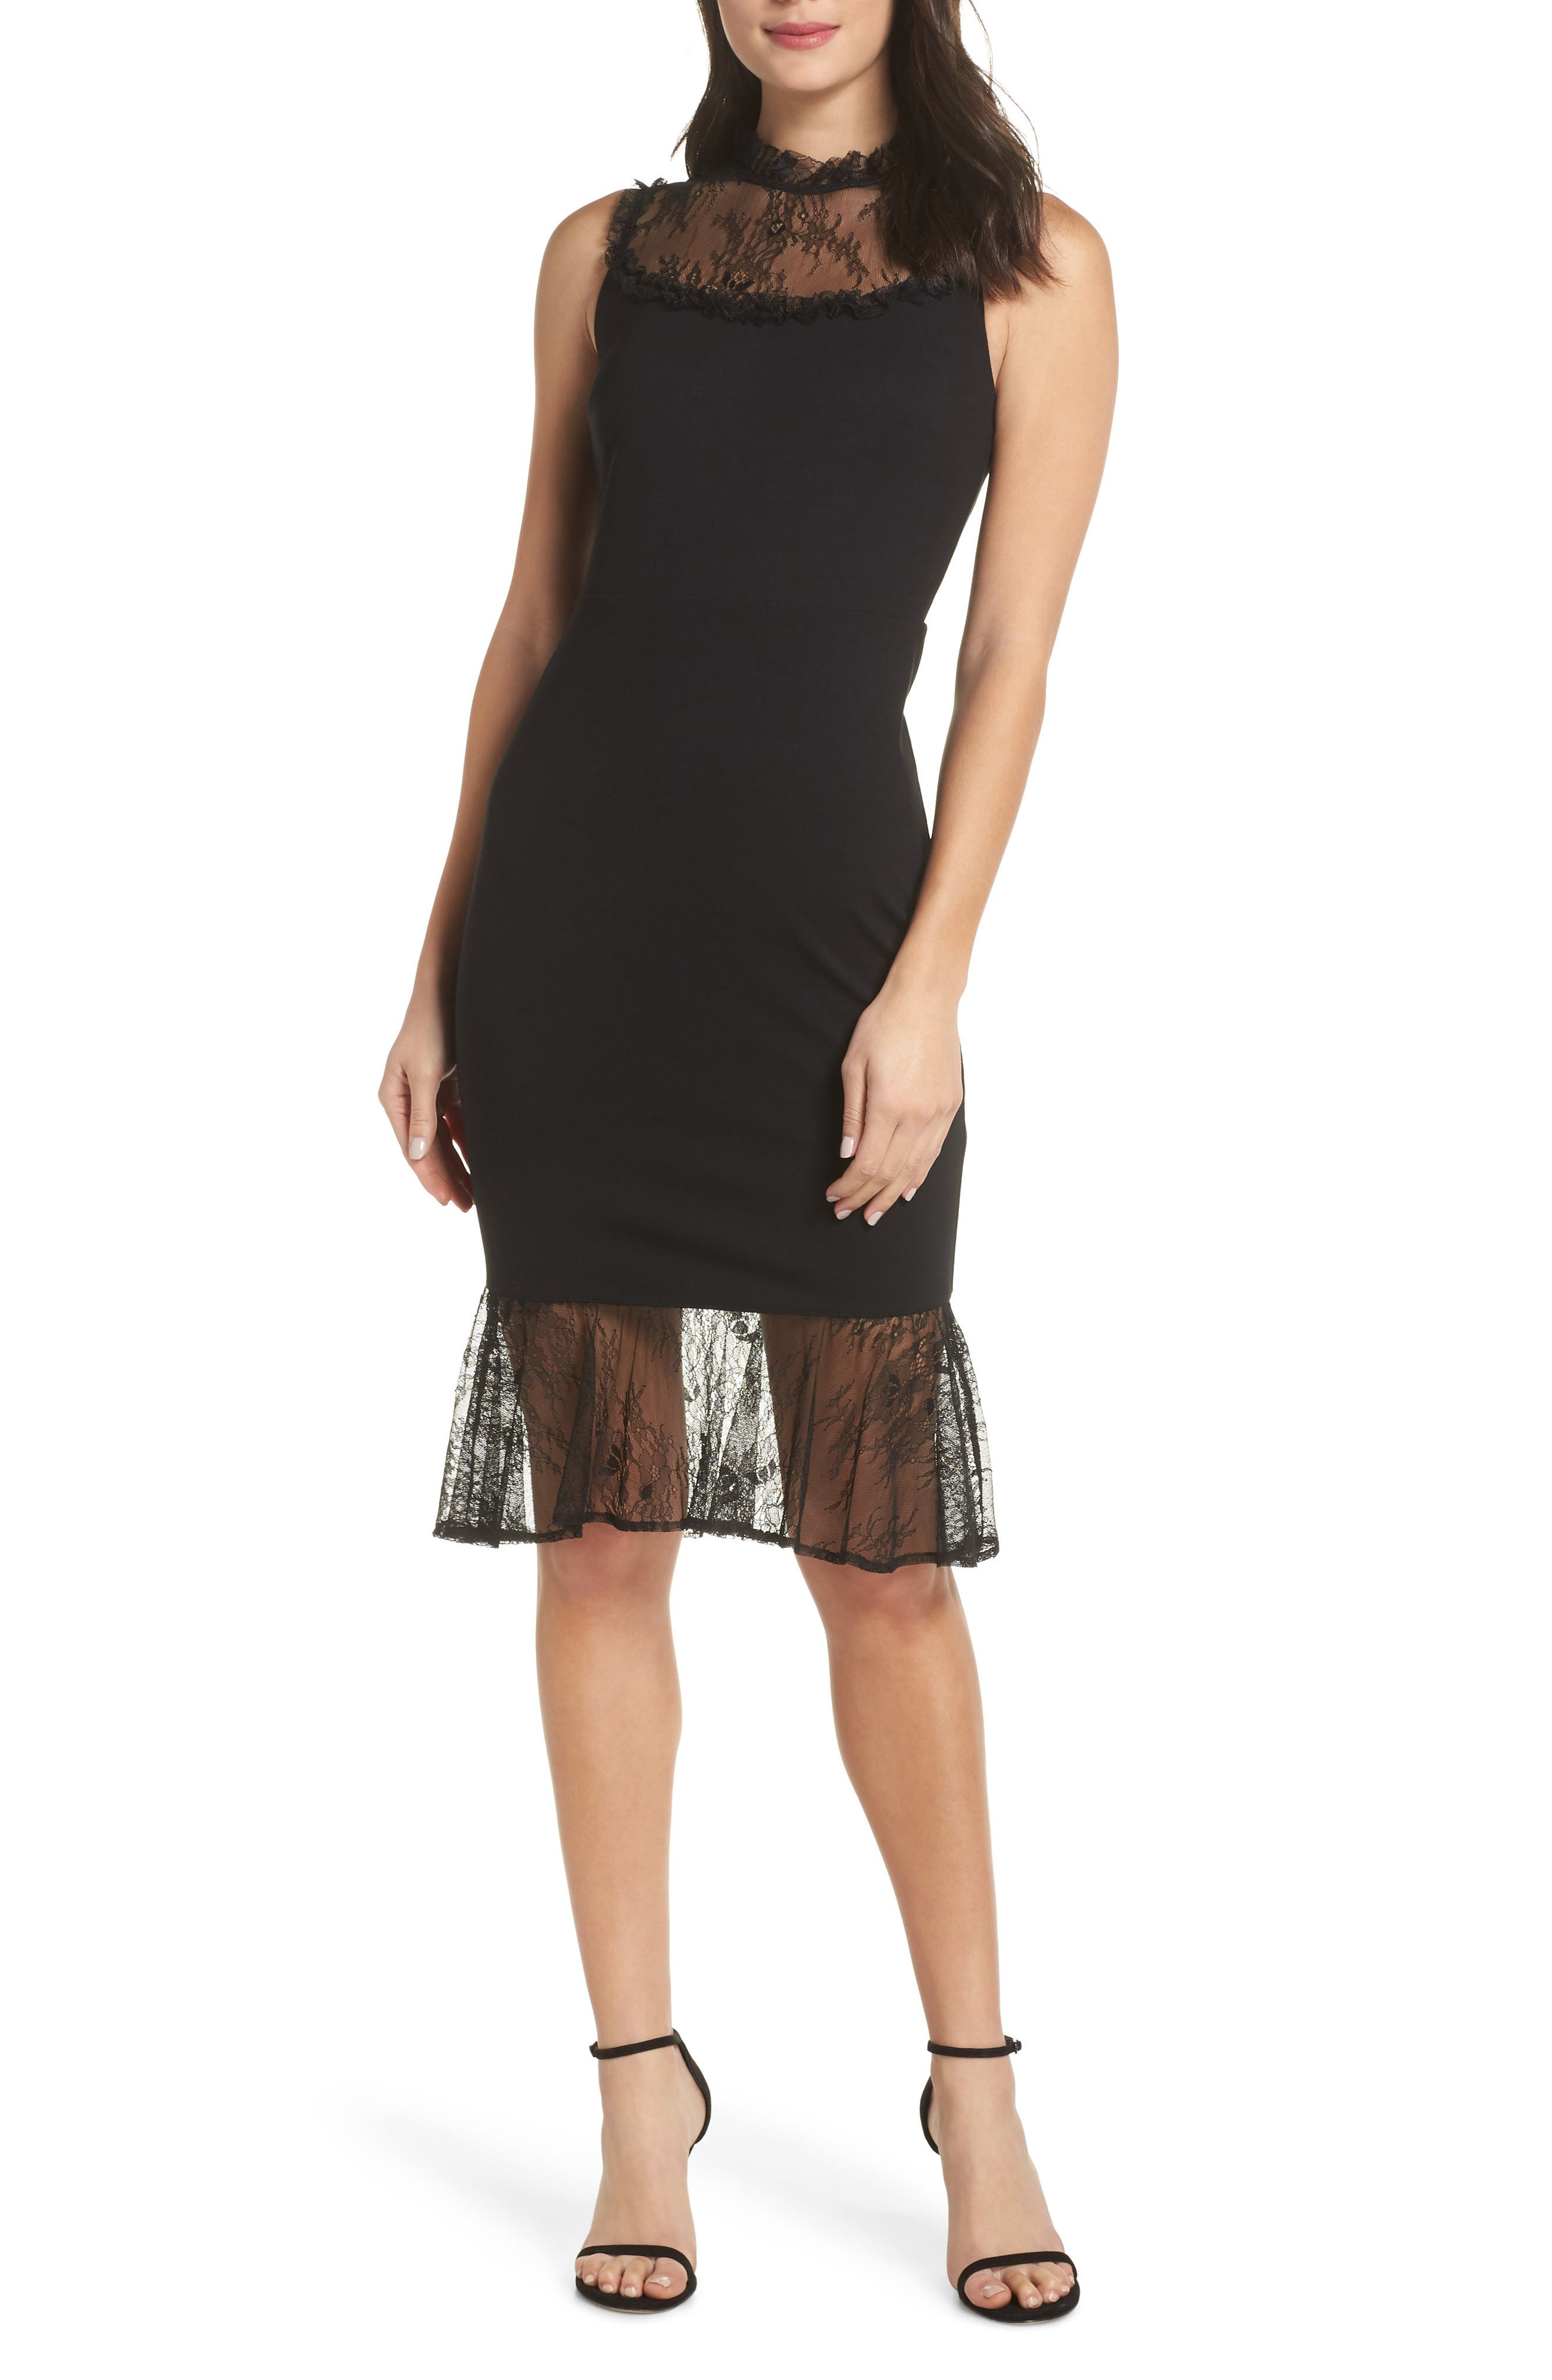 ALI & JAY, Two to Tango Lace Detail Dress, Main thumbnail 1, color, 001